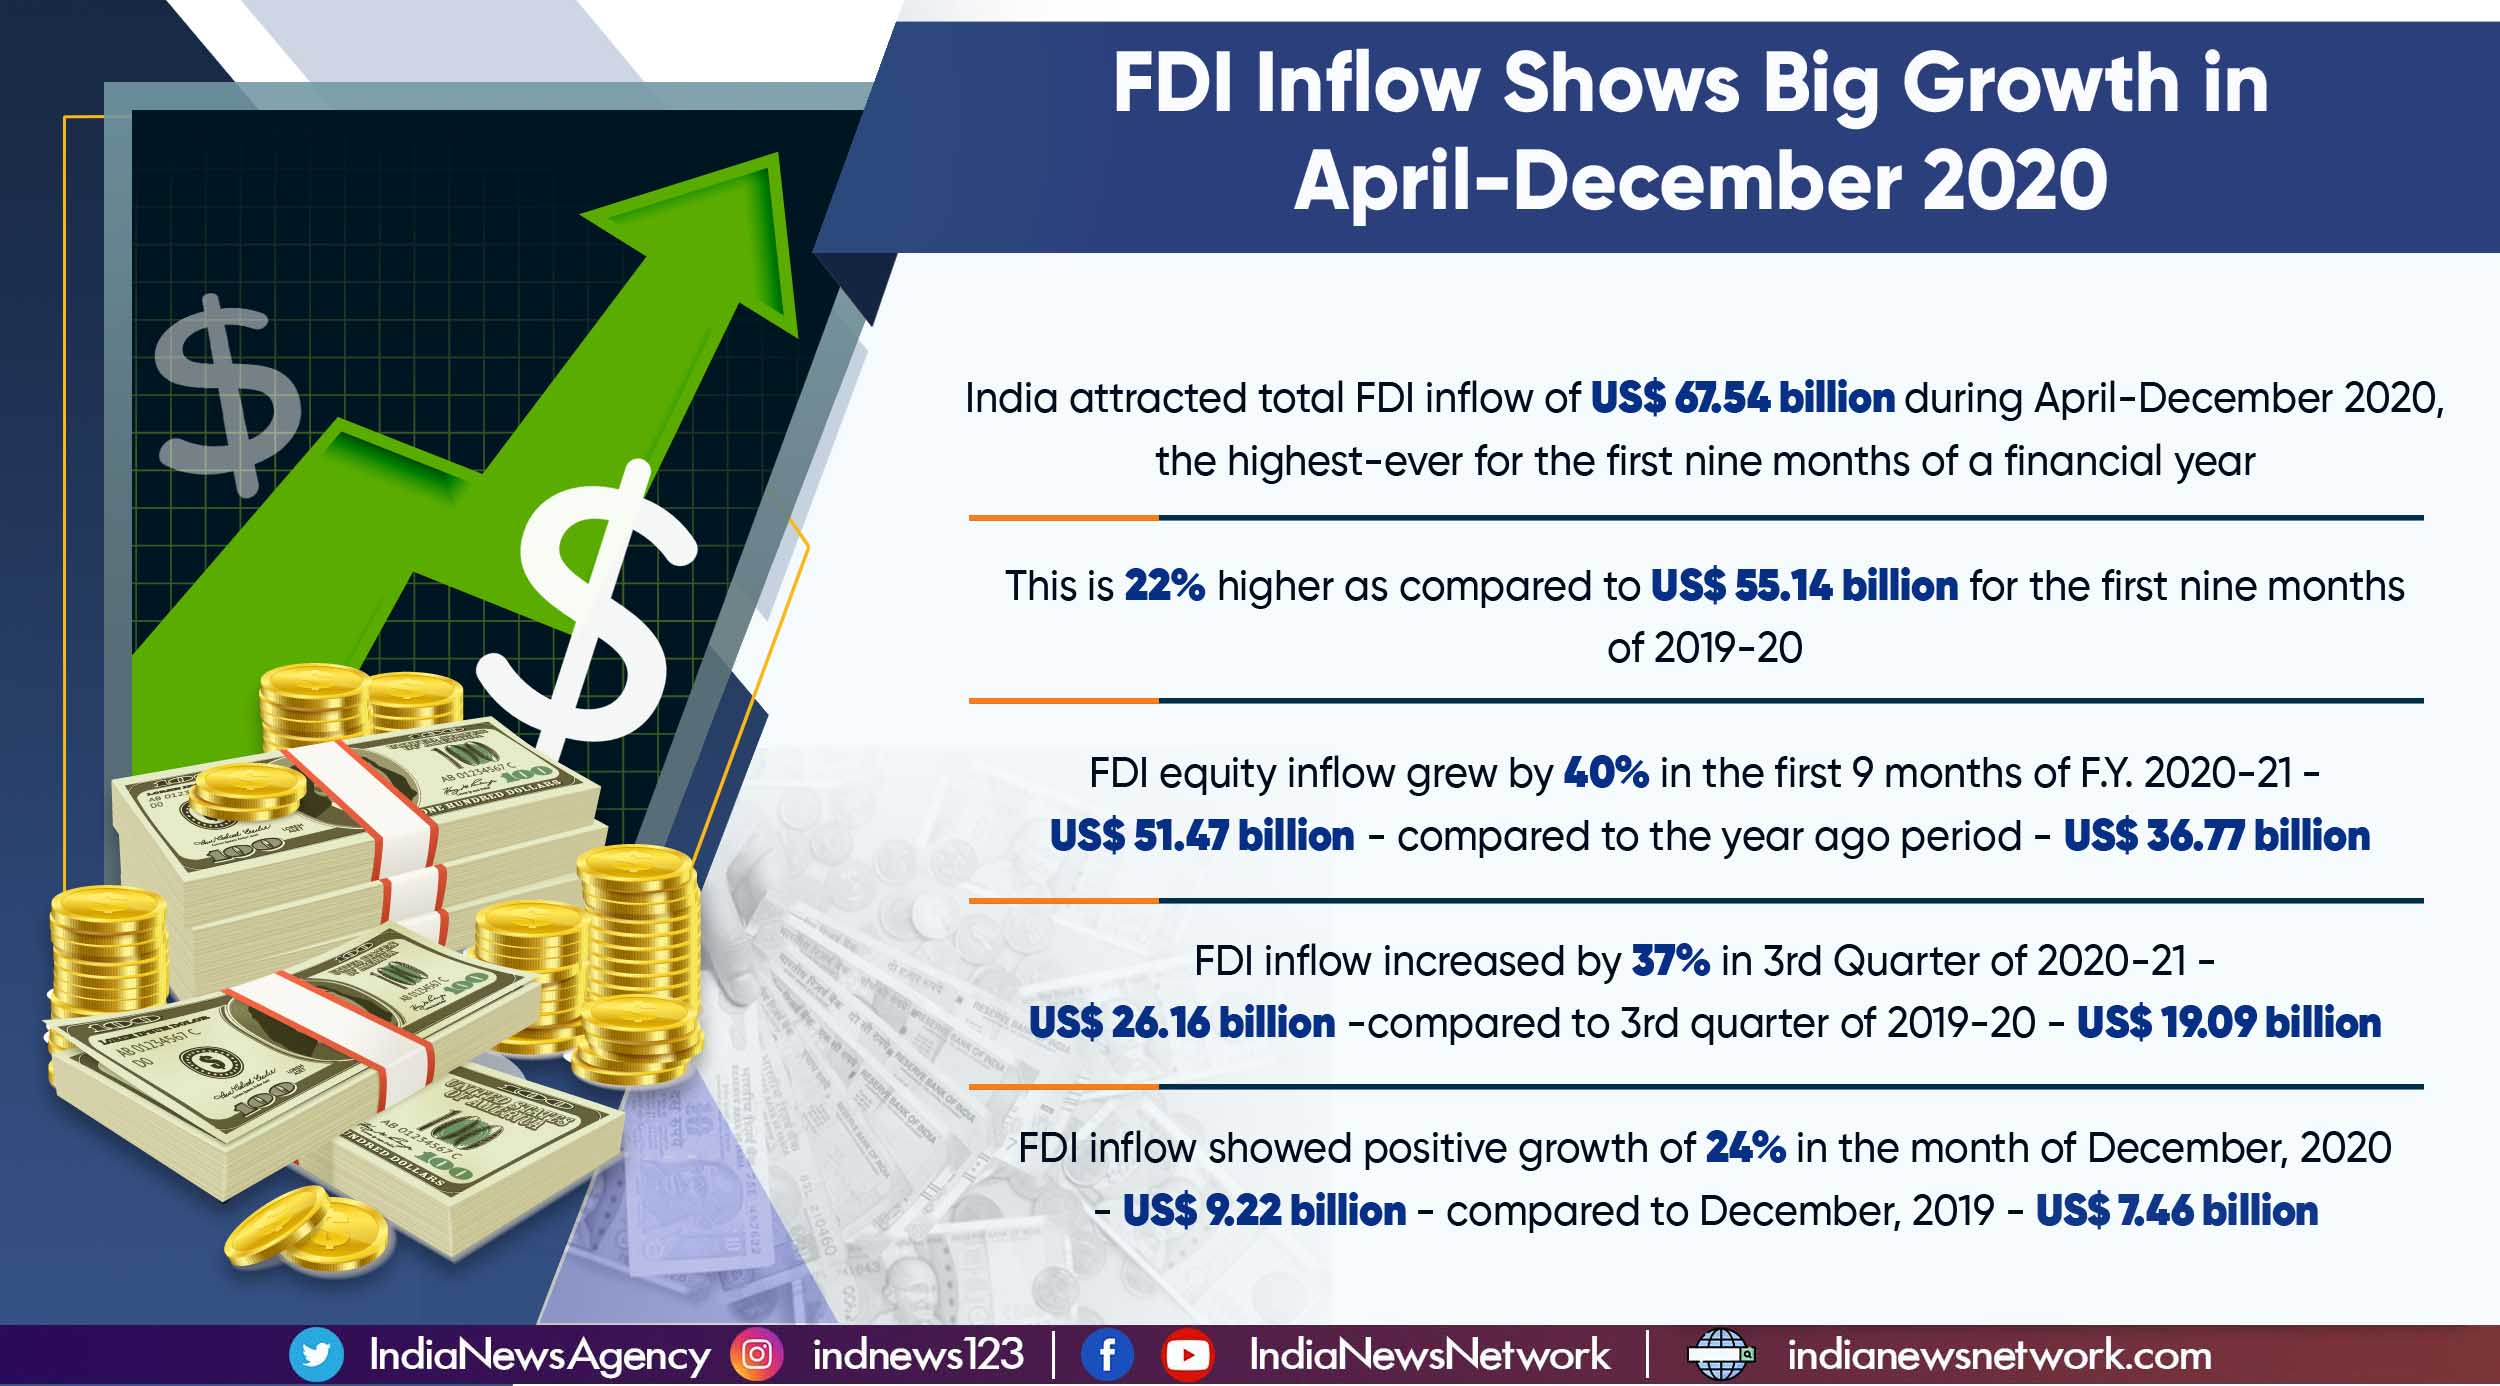 India records FDI inflow of US$ 67.54 billion during April-December 2020